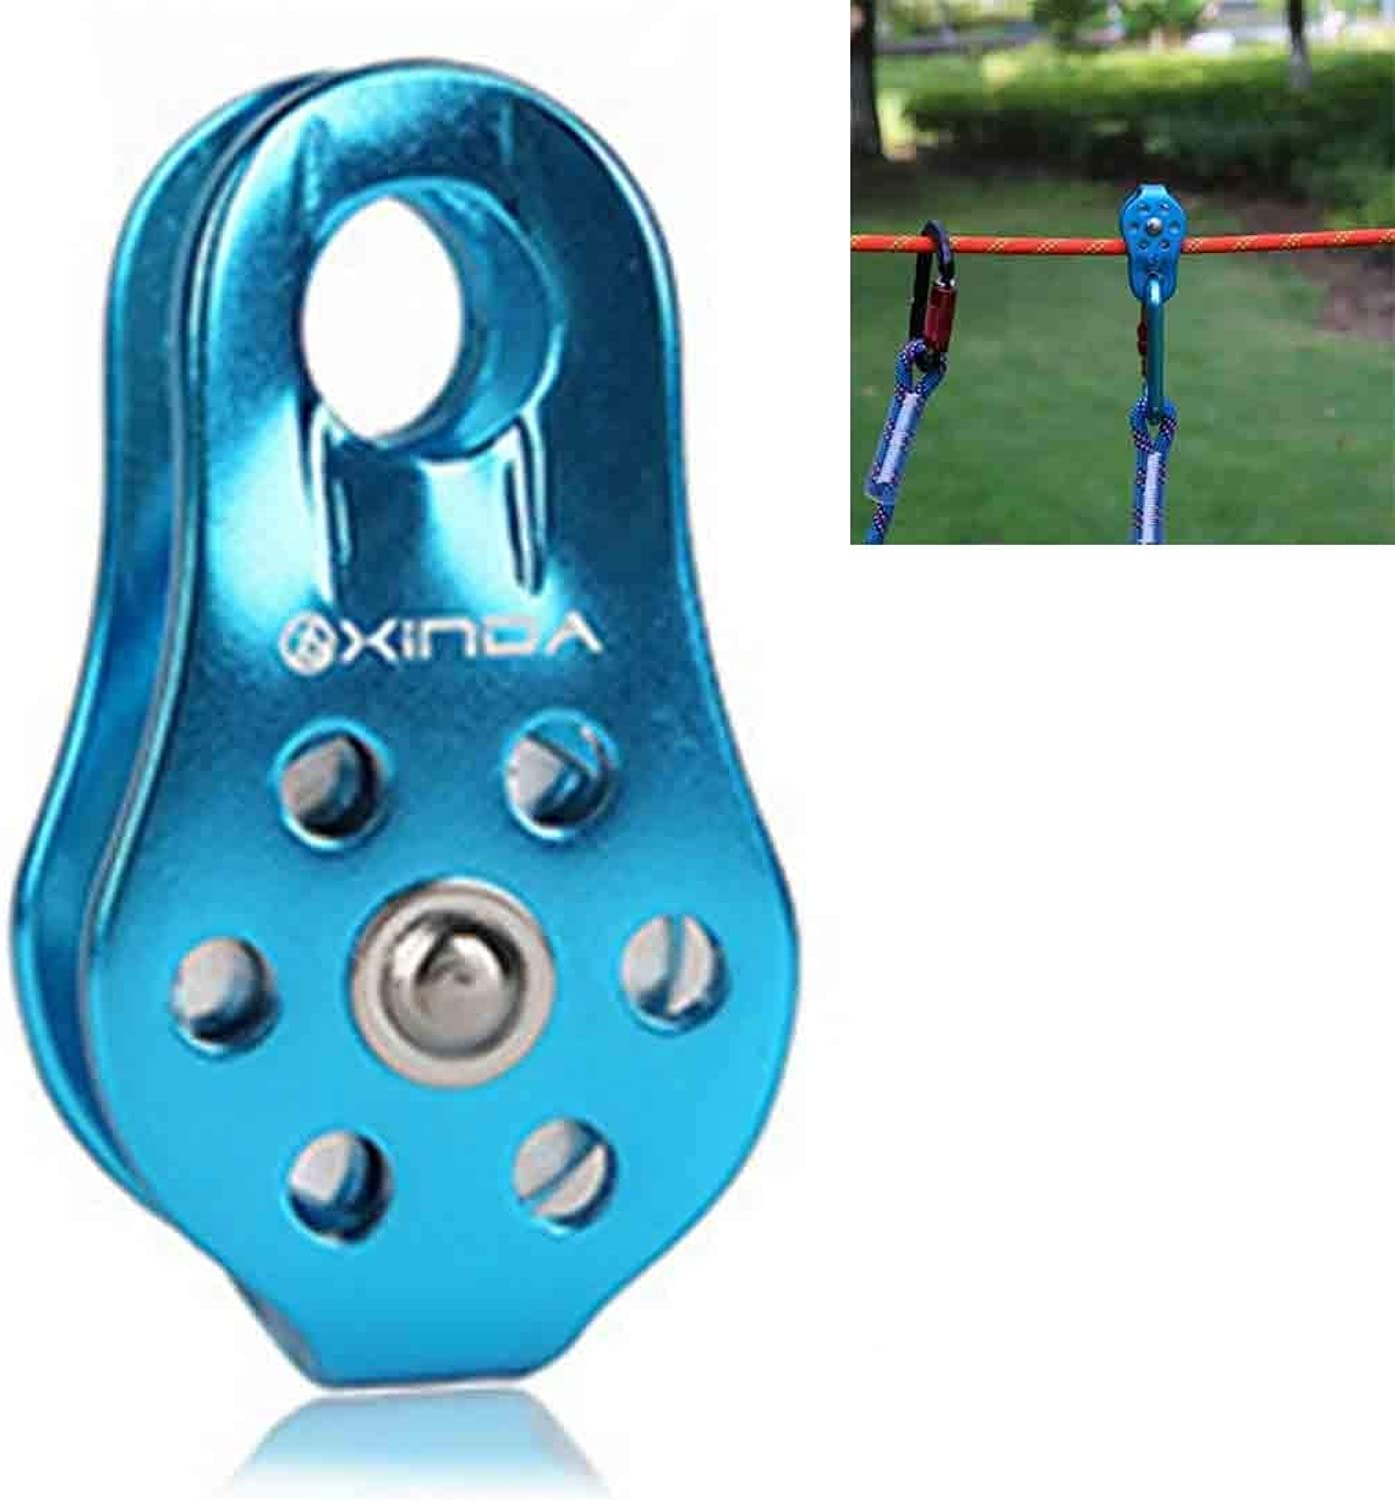 Beautiful Single Fixed Pulley Climbing Rope Climbing Downhill Survival Equipment, Size (Length x Width x Height)  8.2  4.4  2cm Home (color   blueee)